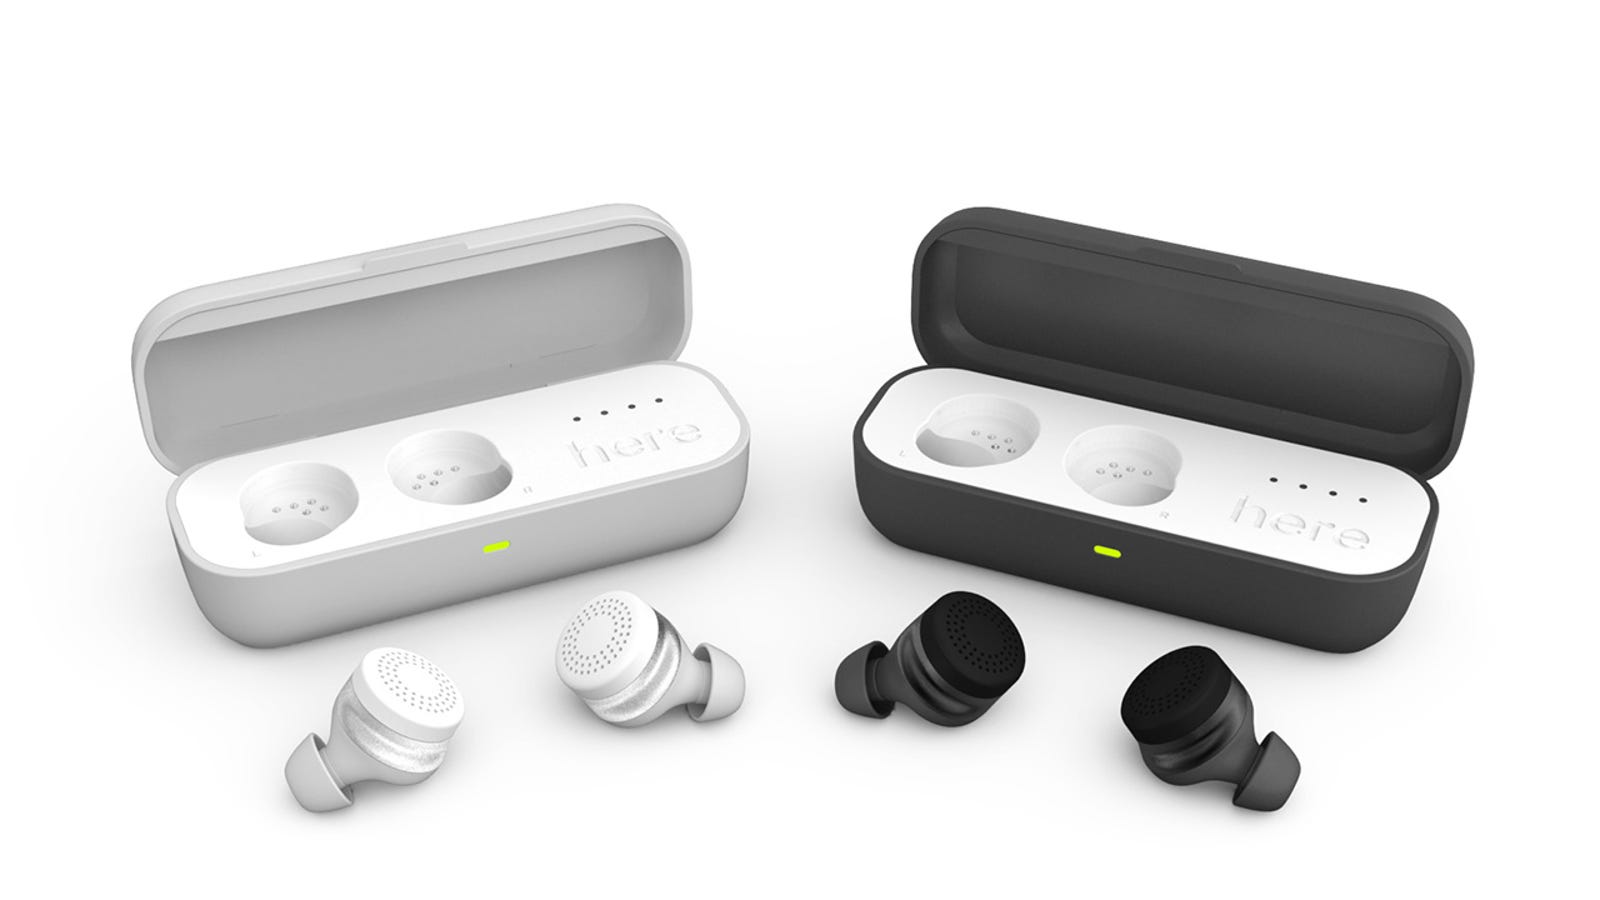 panasonic earbuds with mic white - Bionic Earbuds Are Like a Smartphone You Can Leave in Your Ears Forever